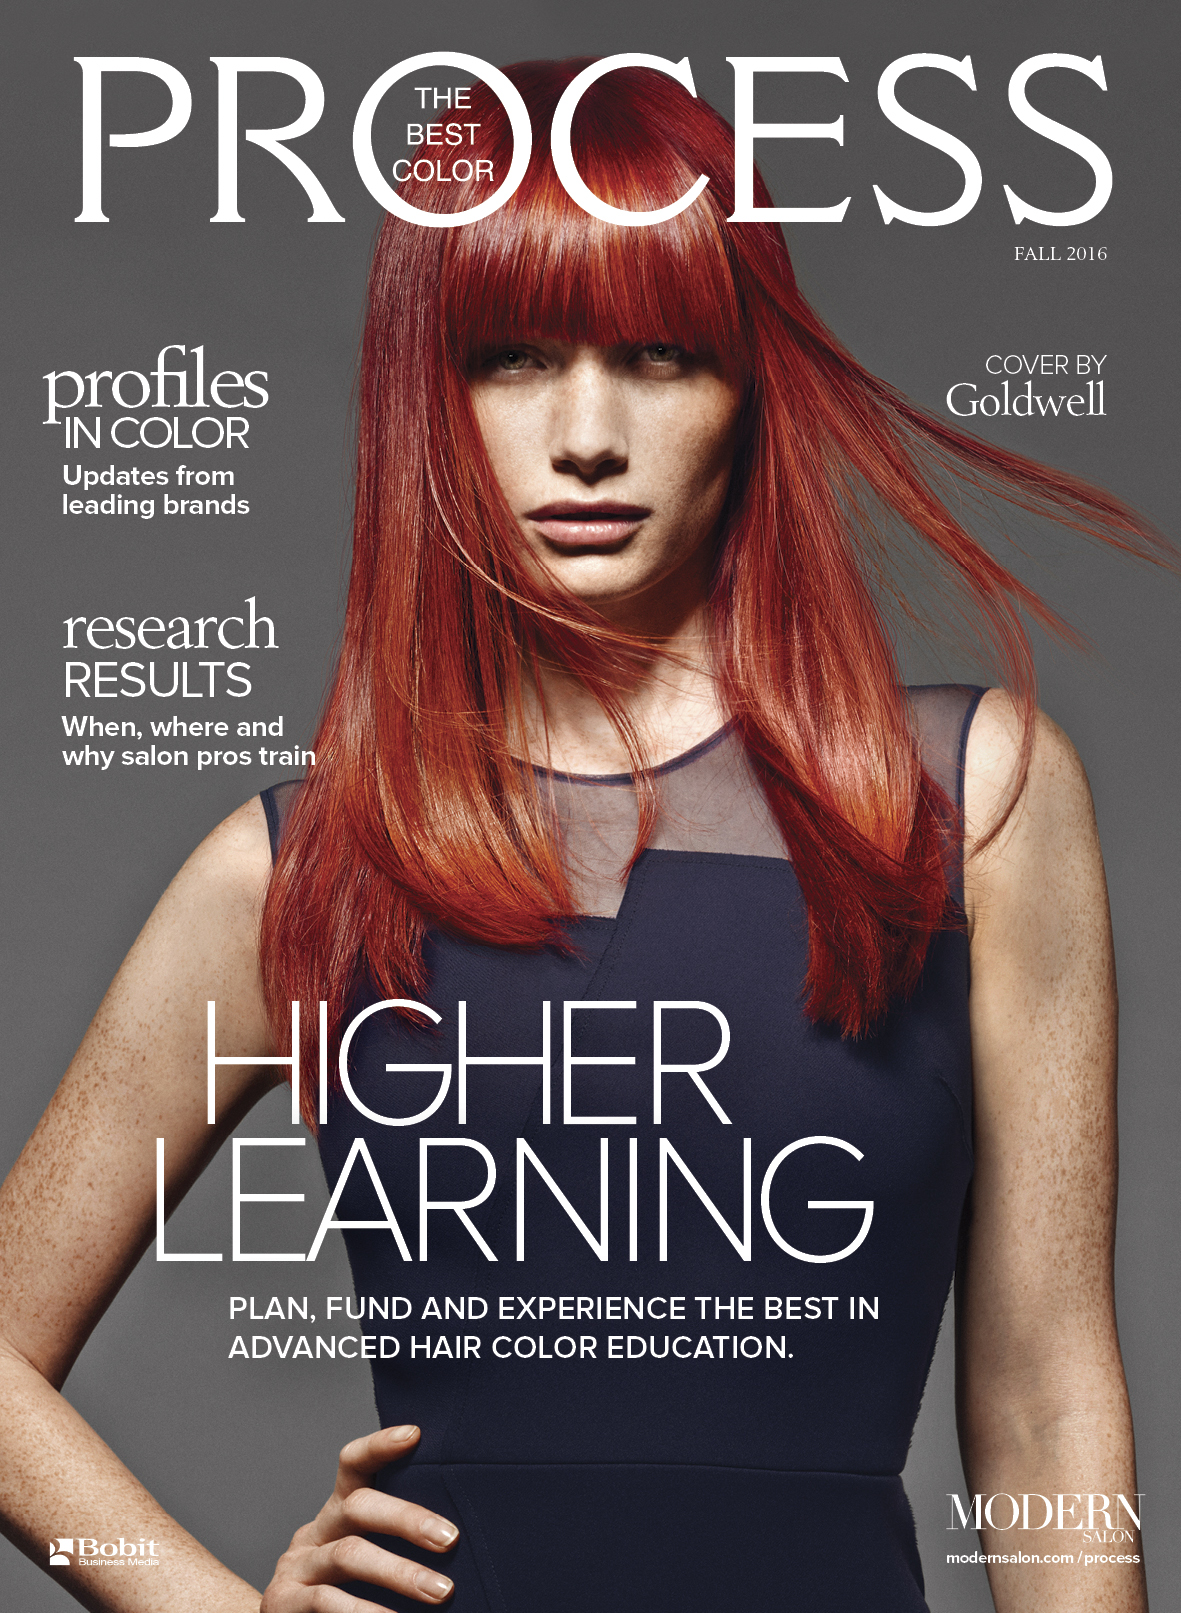 Goldwell Offers Customized Education to Salons and Stylists